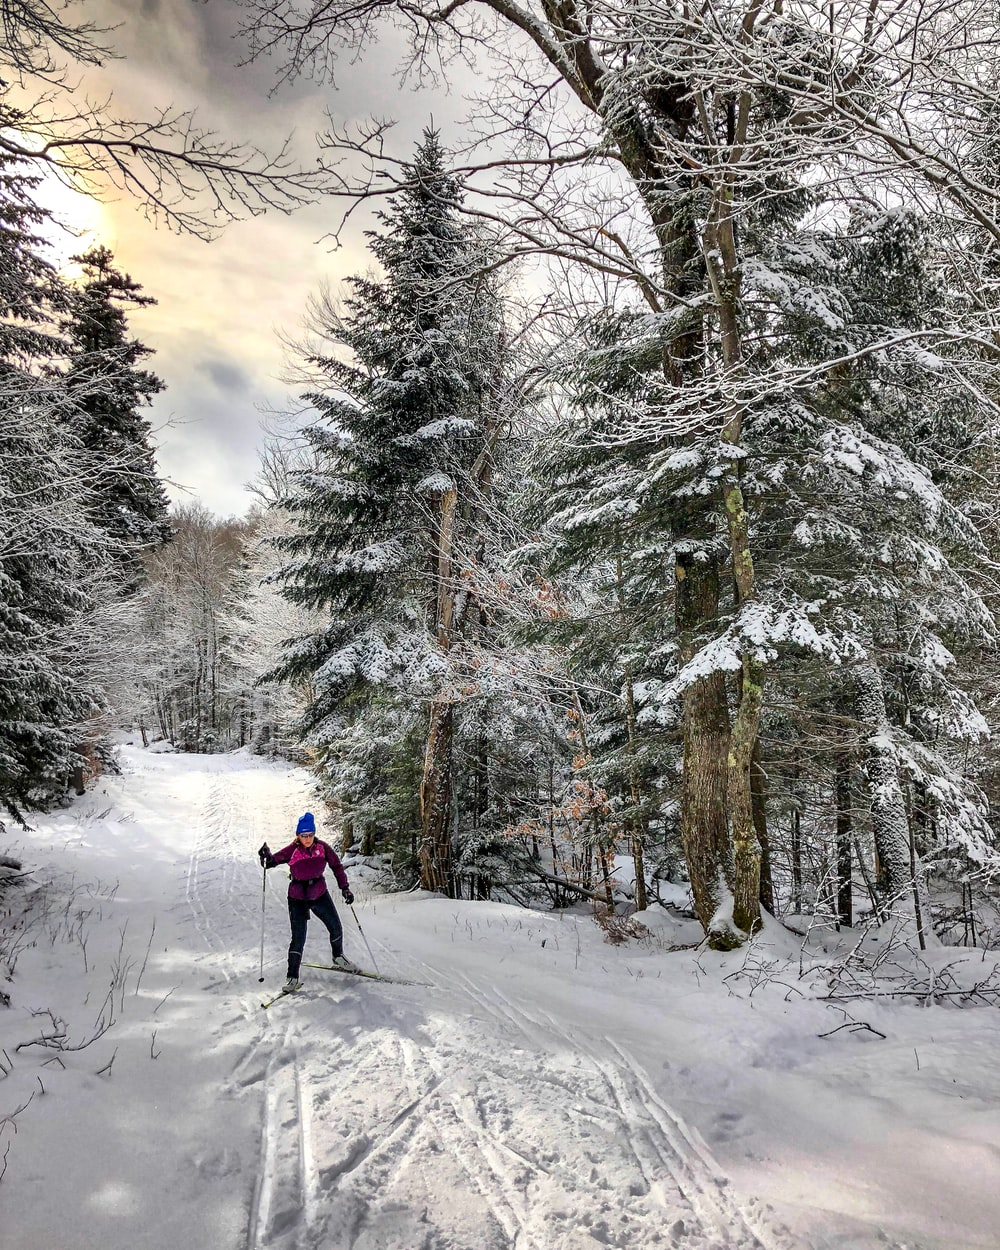 person skiing near trees under white clouds during daytime